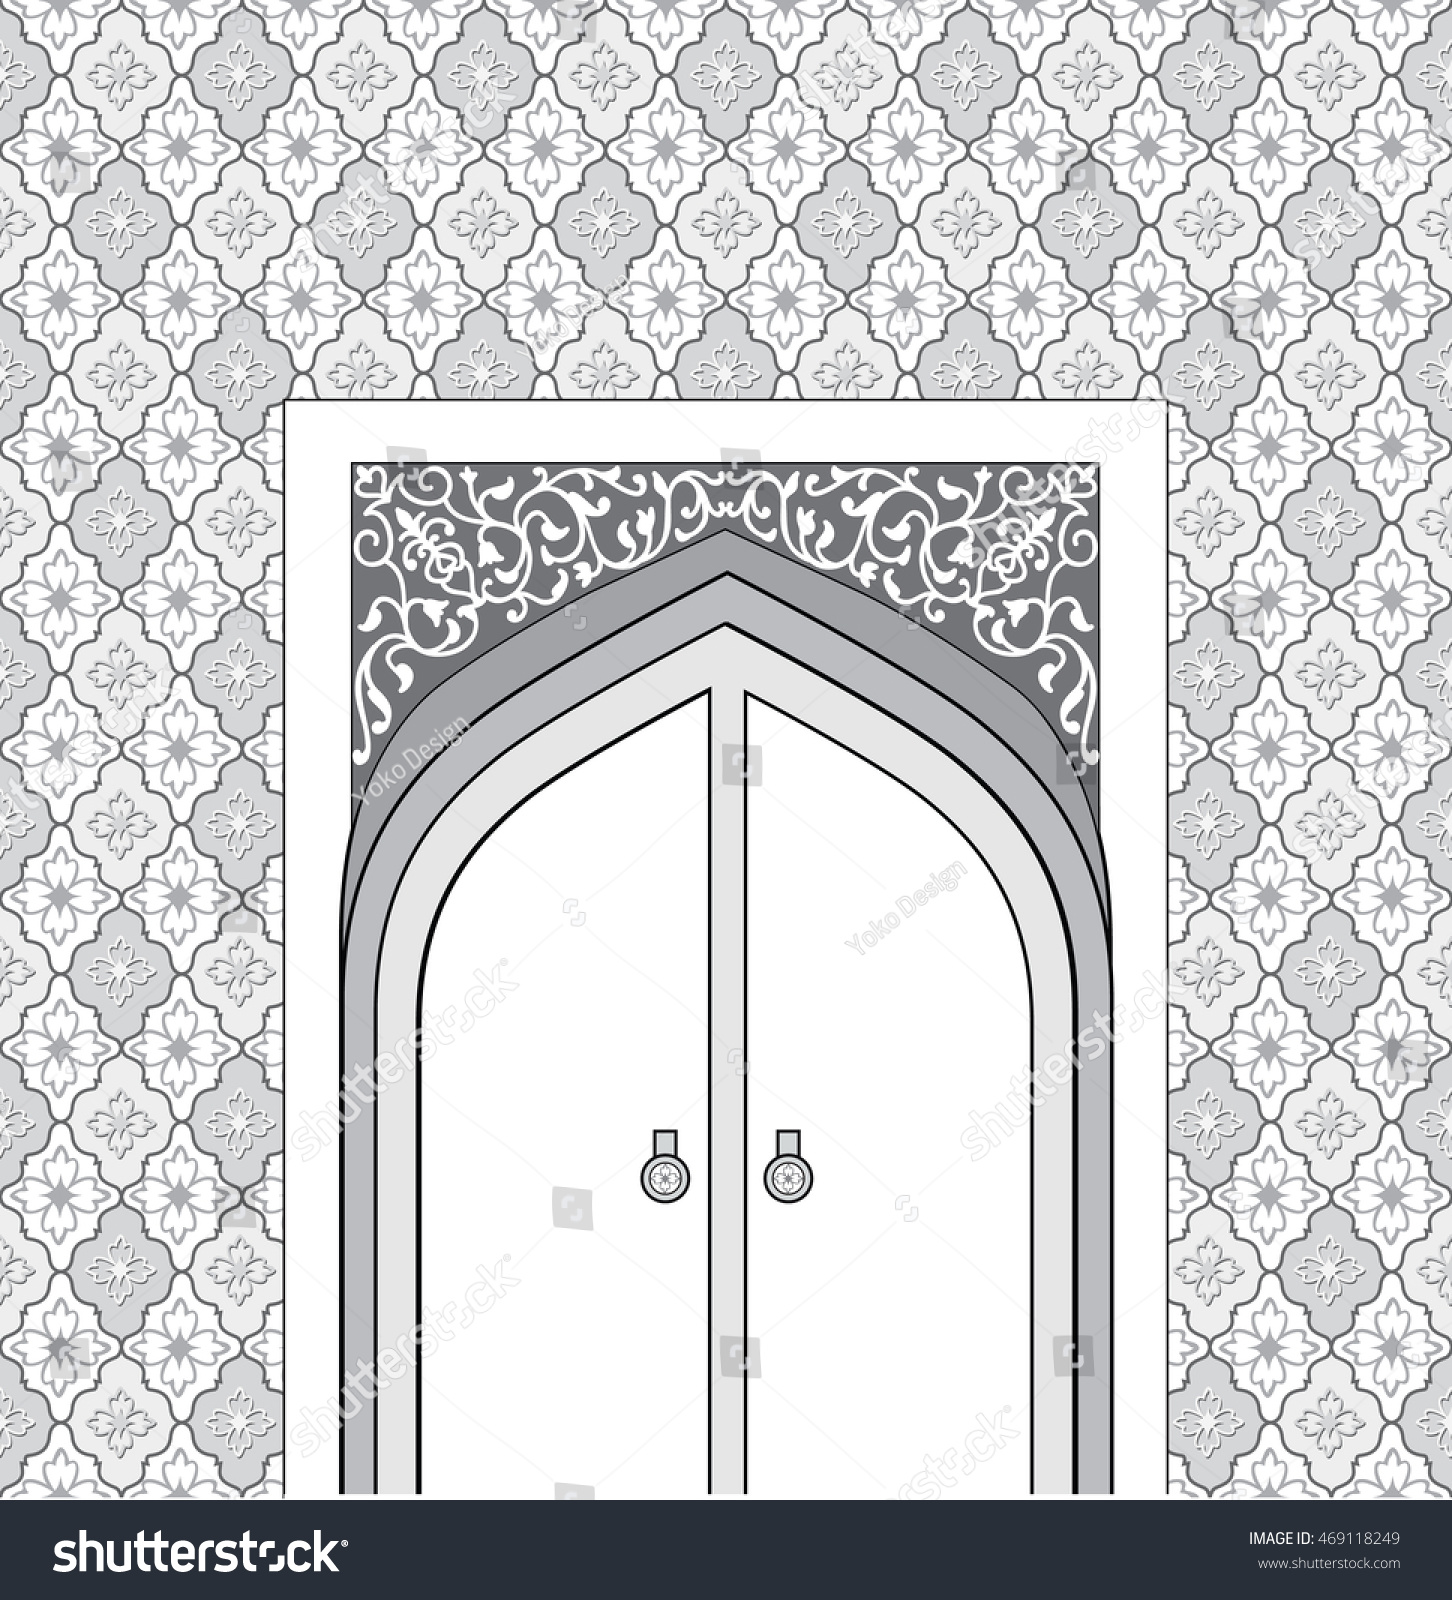 Doorway arabic architectural style arch patterned stock for Architecture arabe